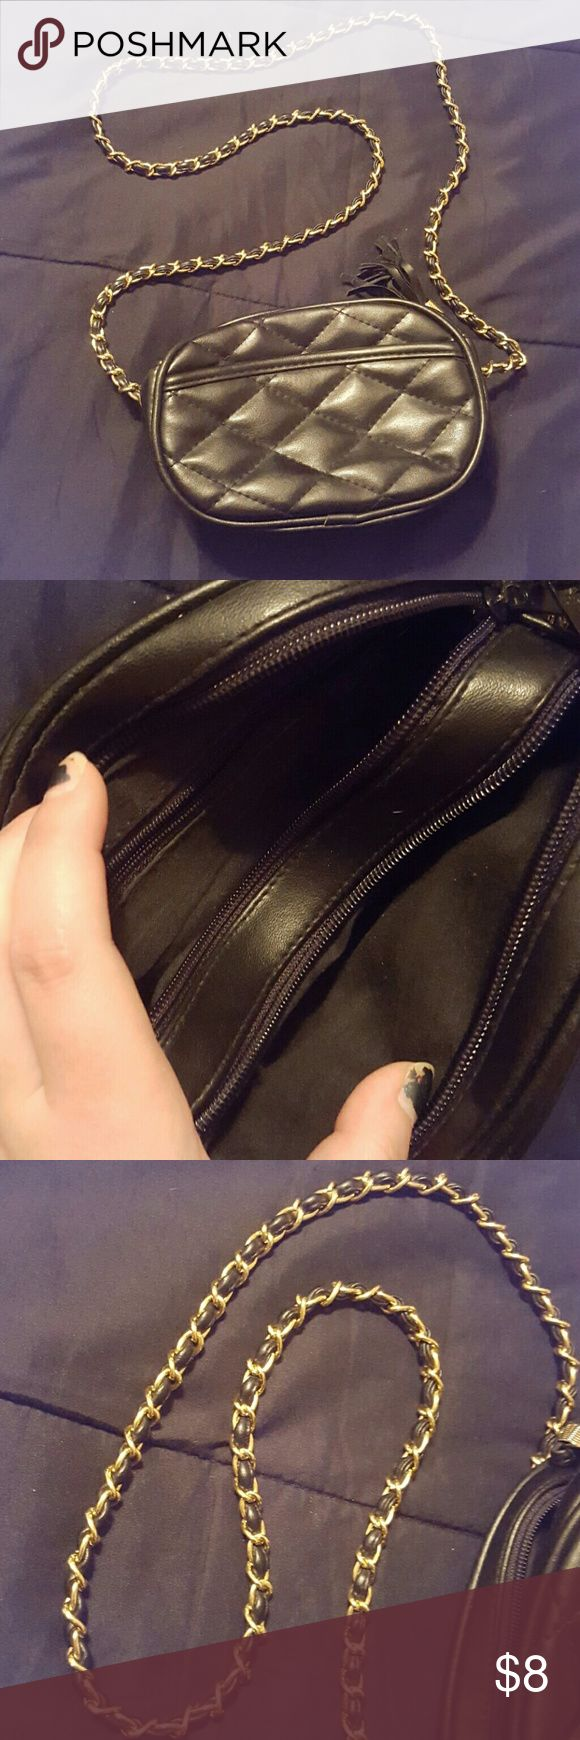 Black purse for sale! Small black purse for sale. Double pockets inside, zipper works great. Gold and black long strap. Small tassles on the zippers, one is missing ( see last picture ) Make me an offer! Bags